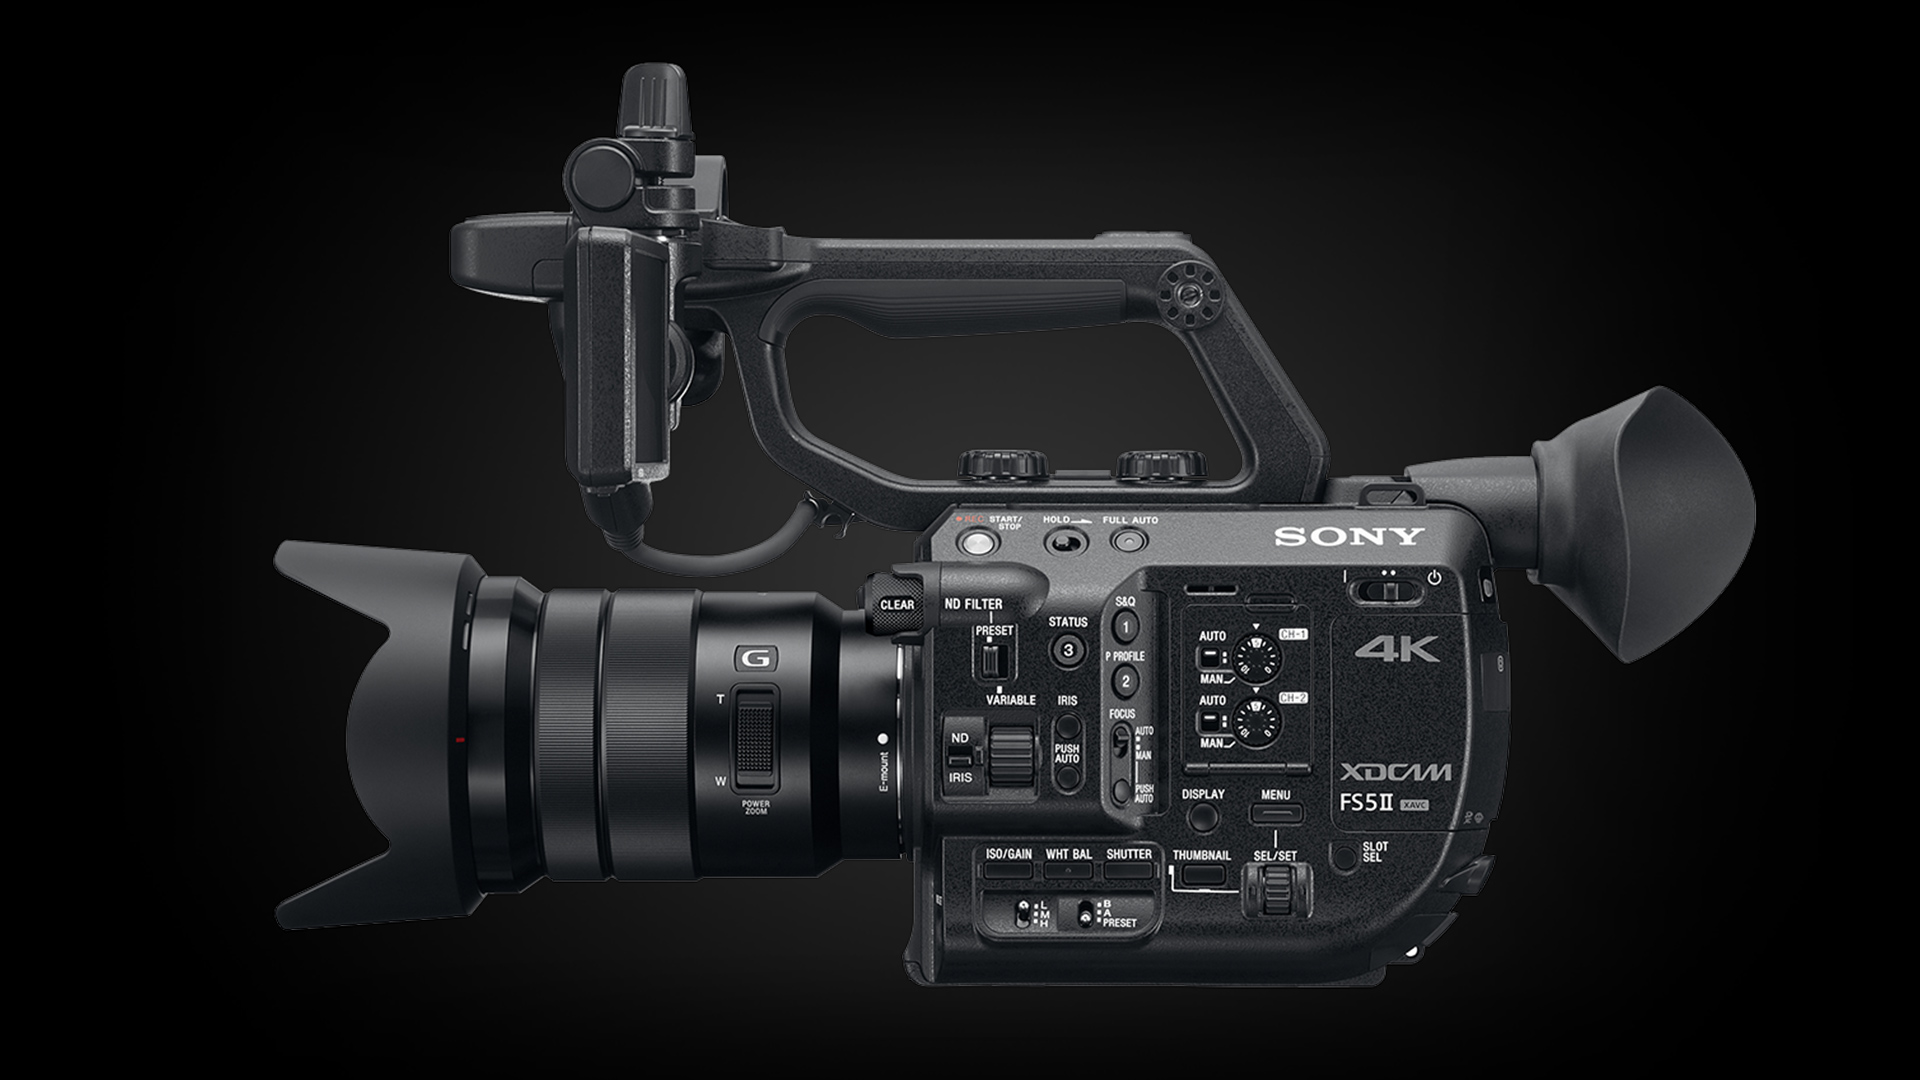 The Sony FS5M2